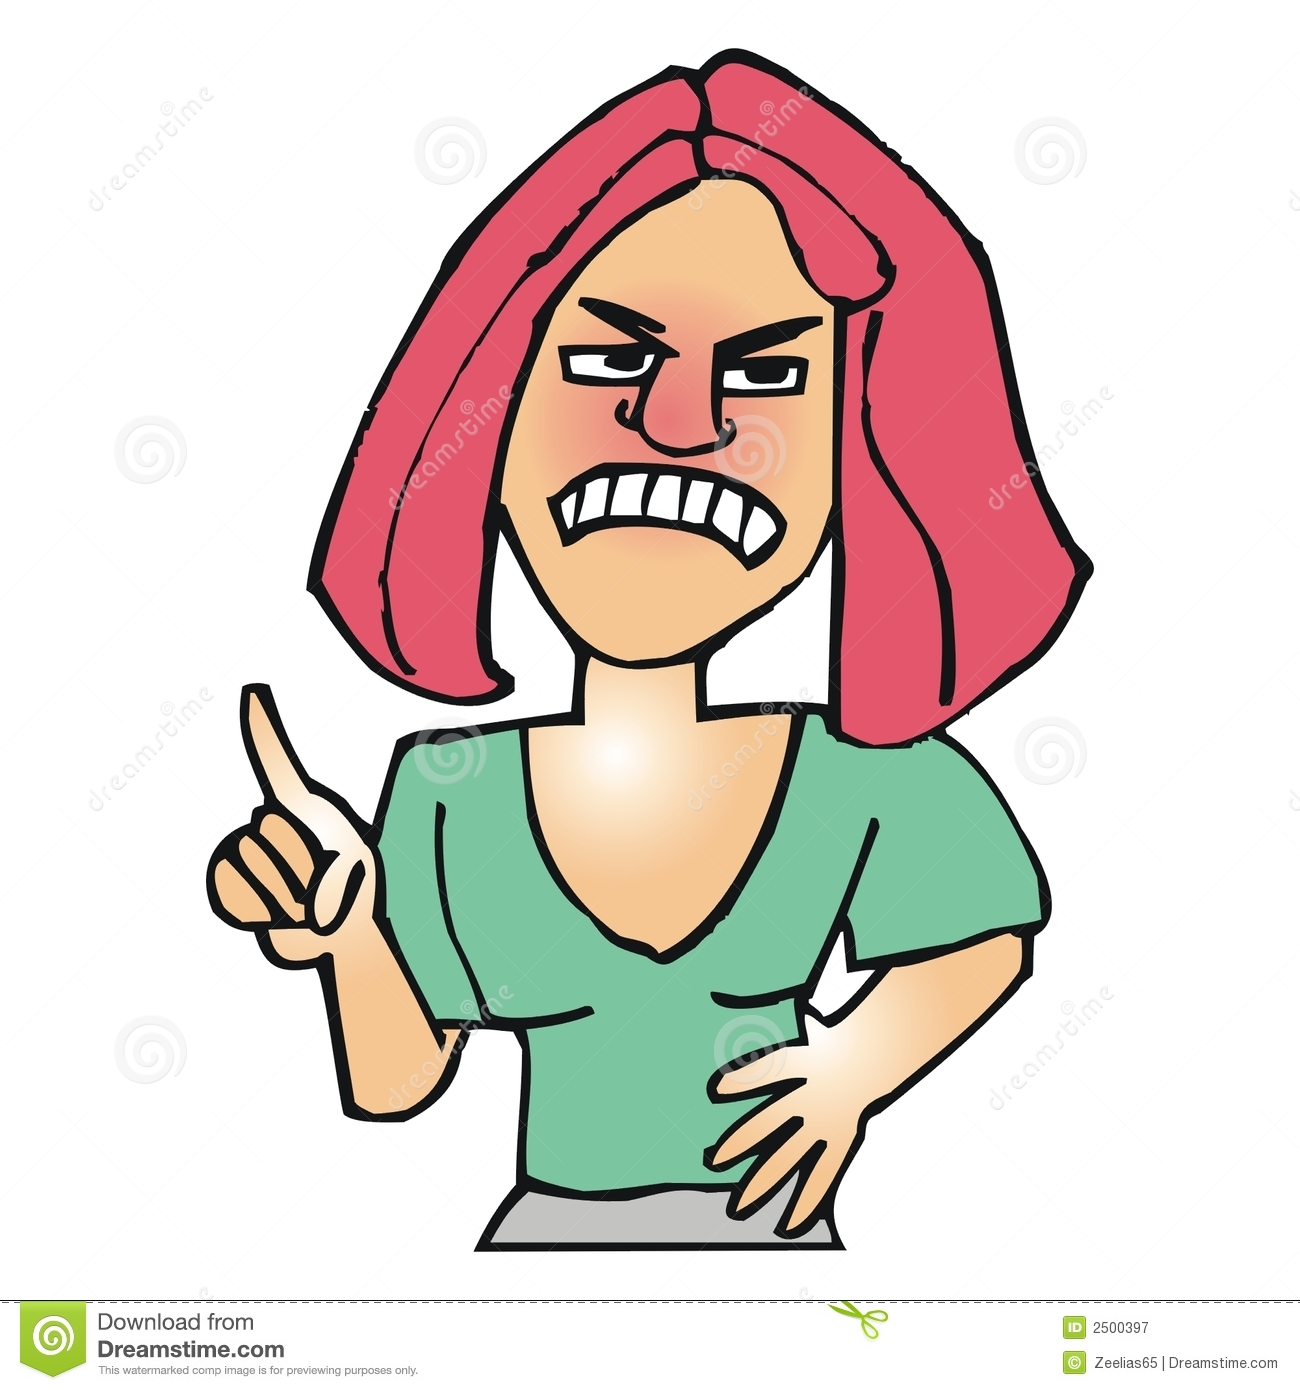 Angry clipart mum, Angry mum Transparent FREE for download.